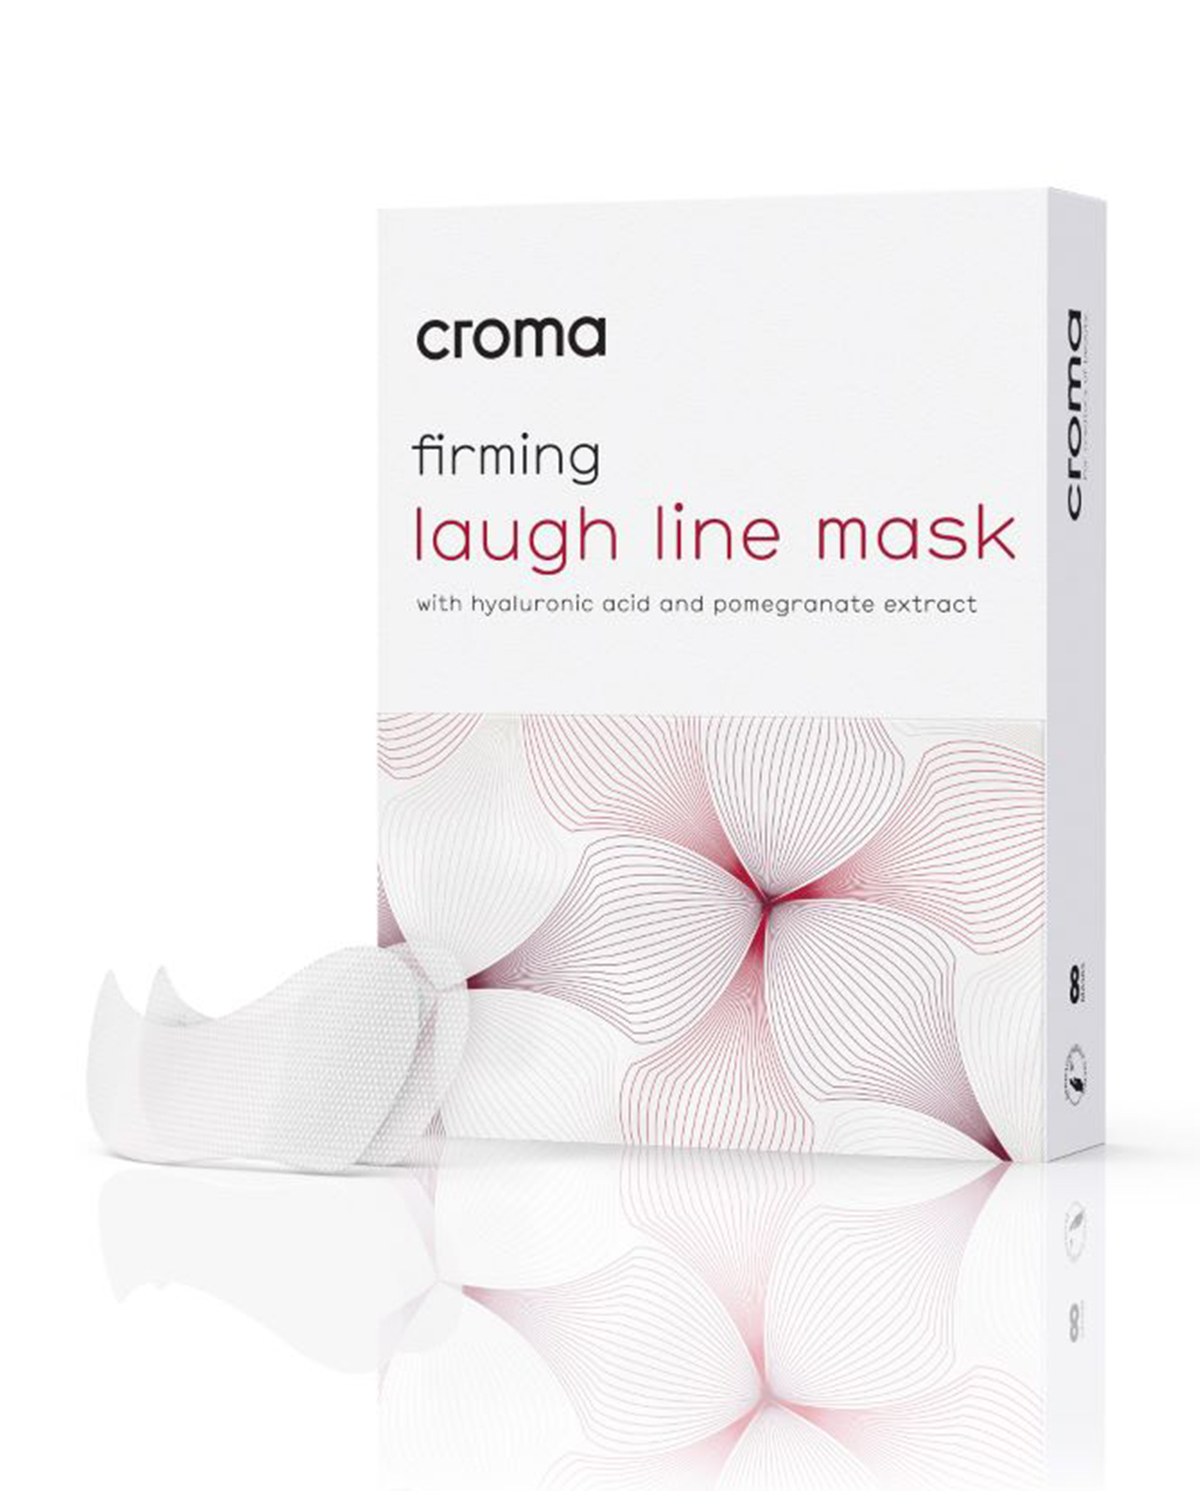 Croma firming laugh line mask sRGB Large 1